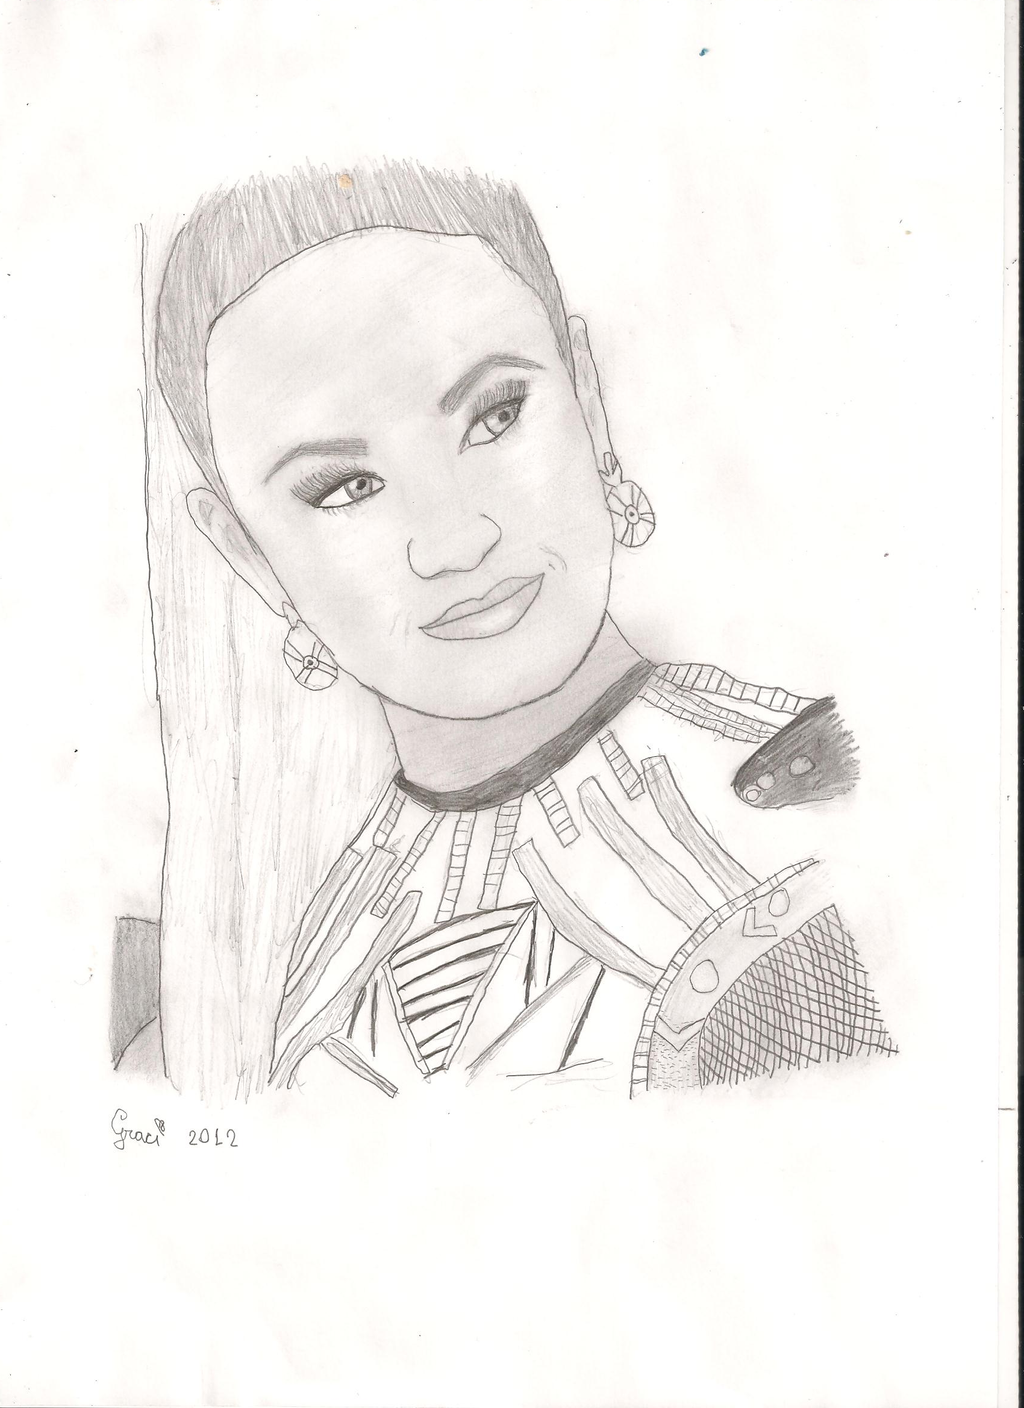 Pin coloring pages for kids number one 1 on pinterest for Demi lovato coloring pages